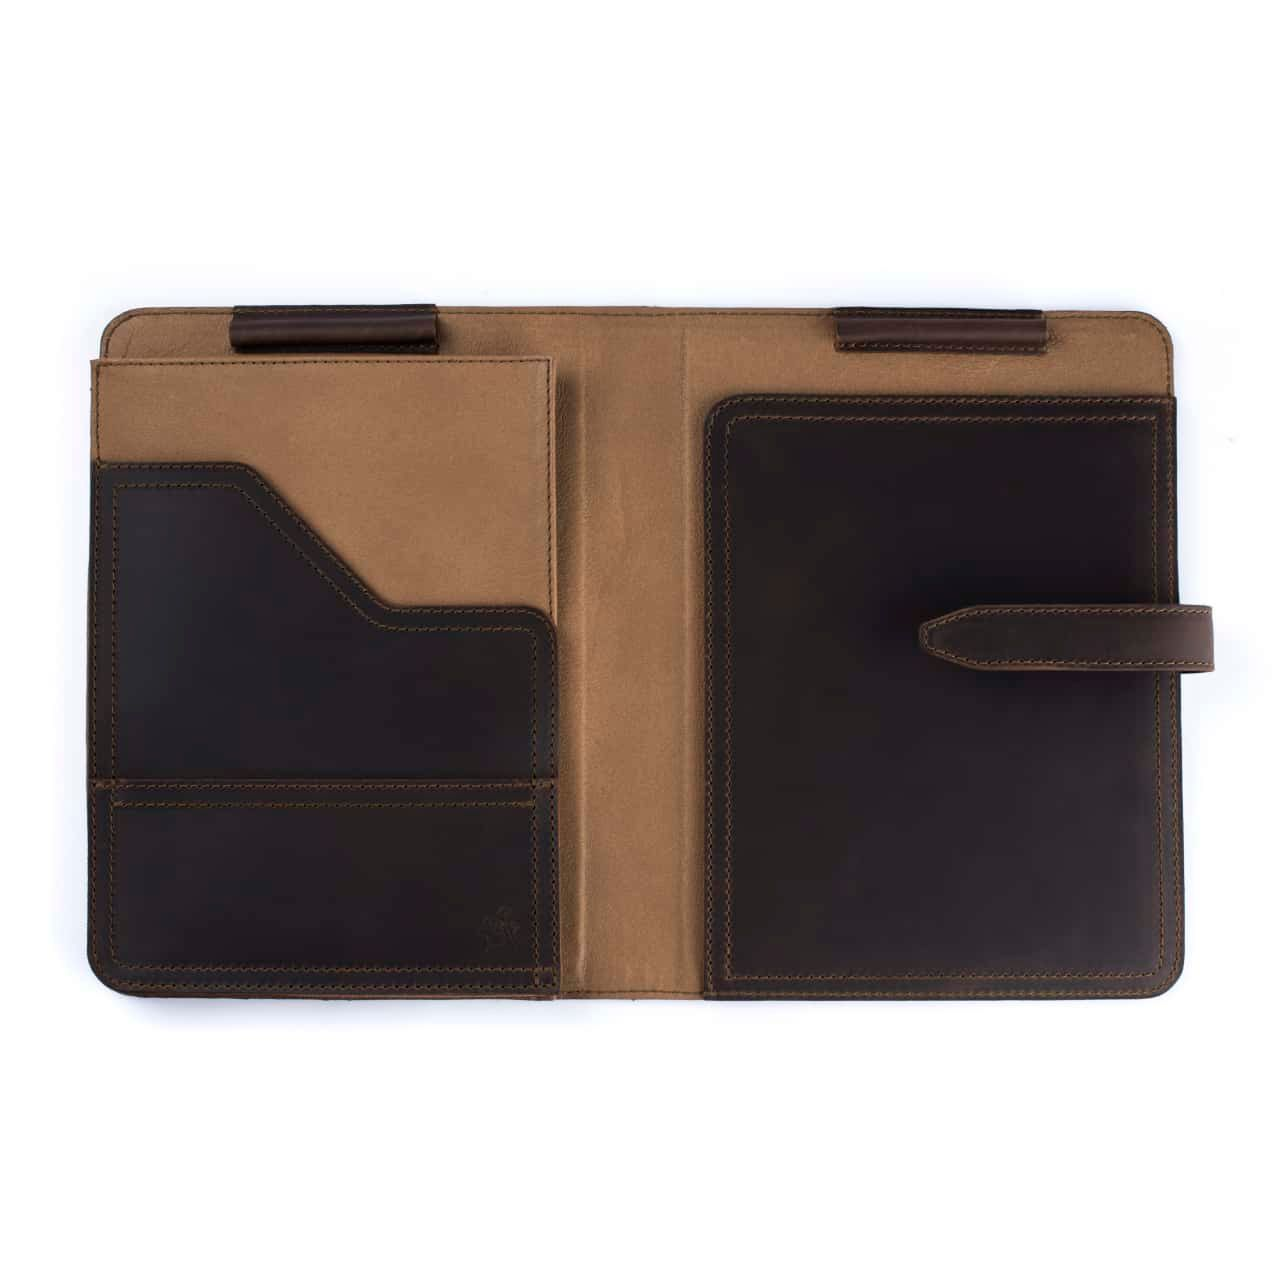 Leather Tablet Notepad Holder Open and Empty in the Color Dark Coffee Brown